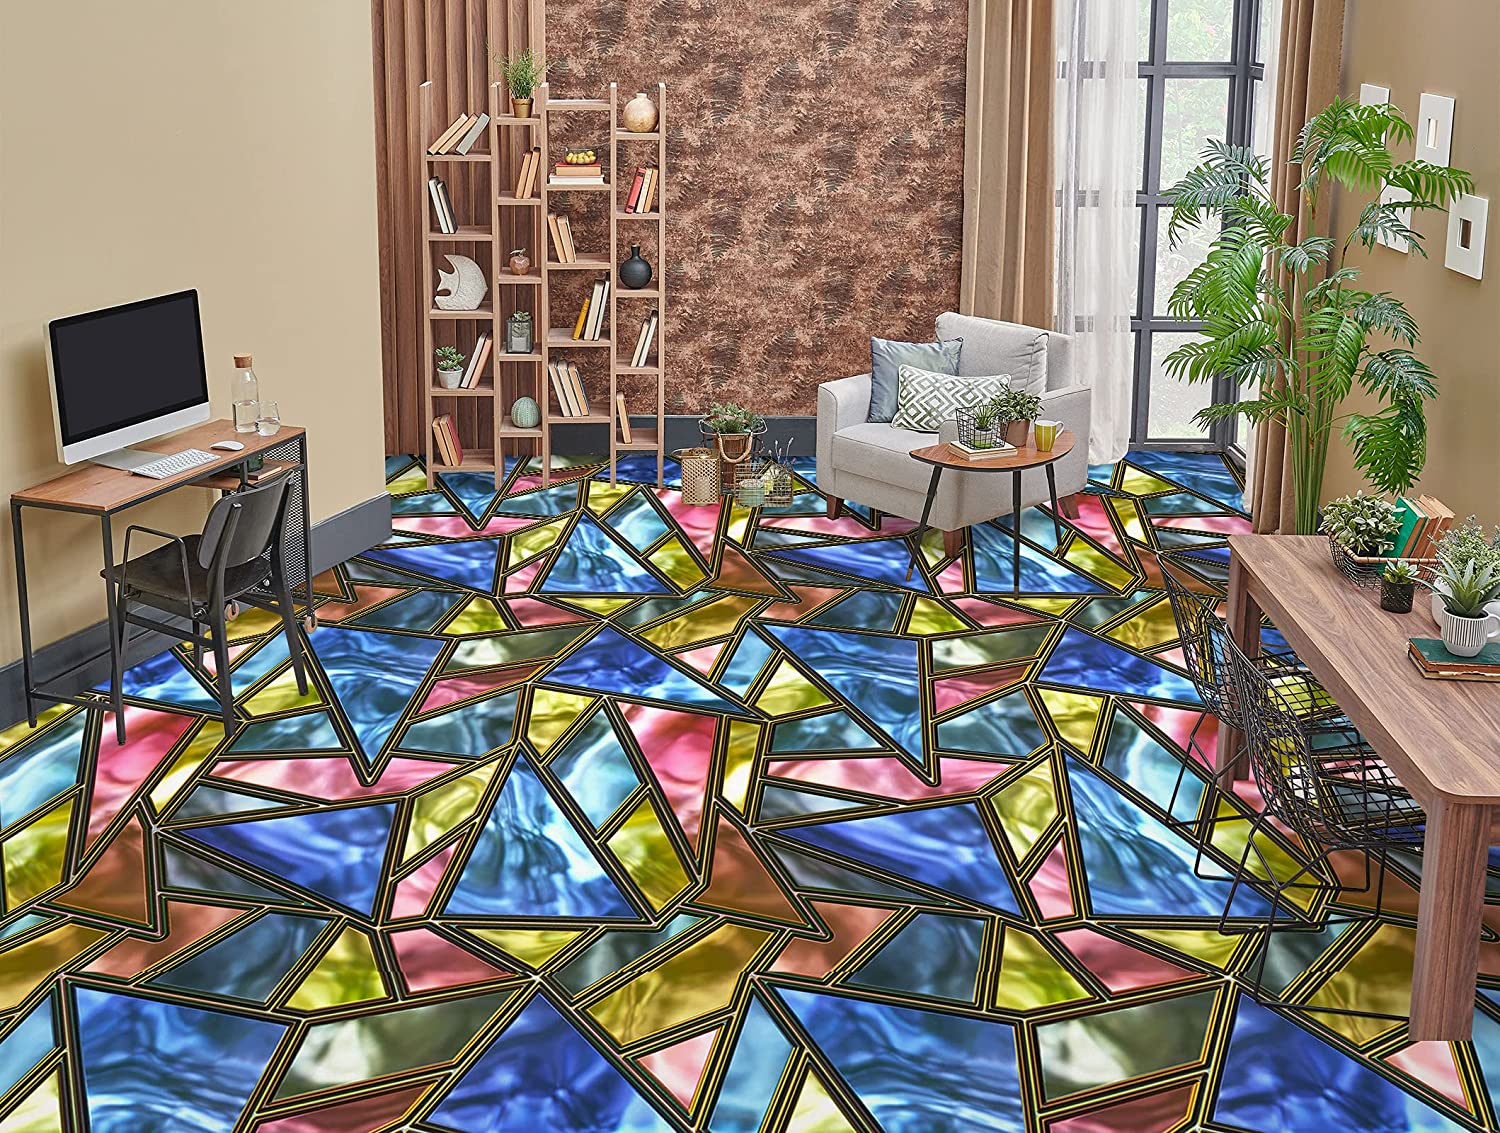 3D Color Pattern 6477 Floor Wallpaper Wall Recommendation Print Decal Shipping included Murals AJ